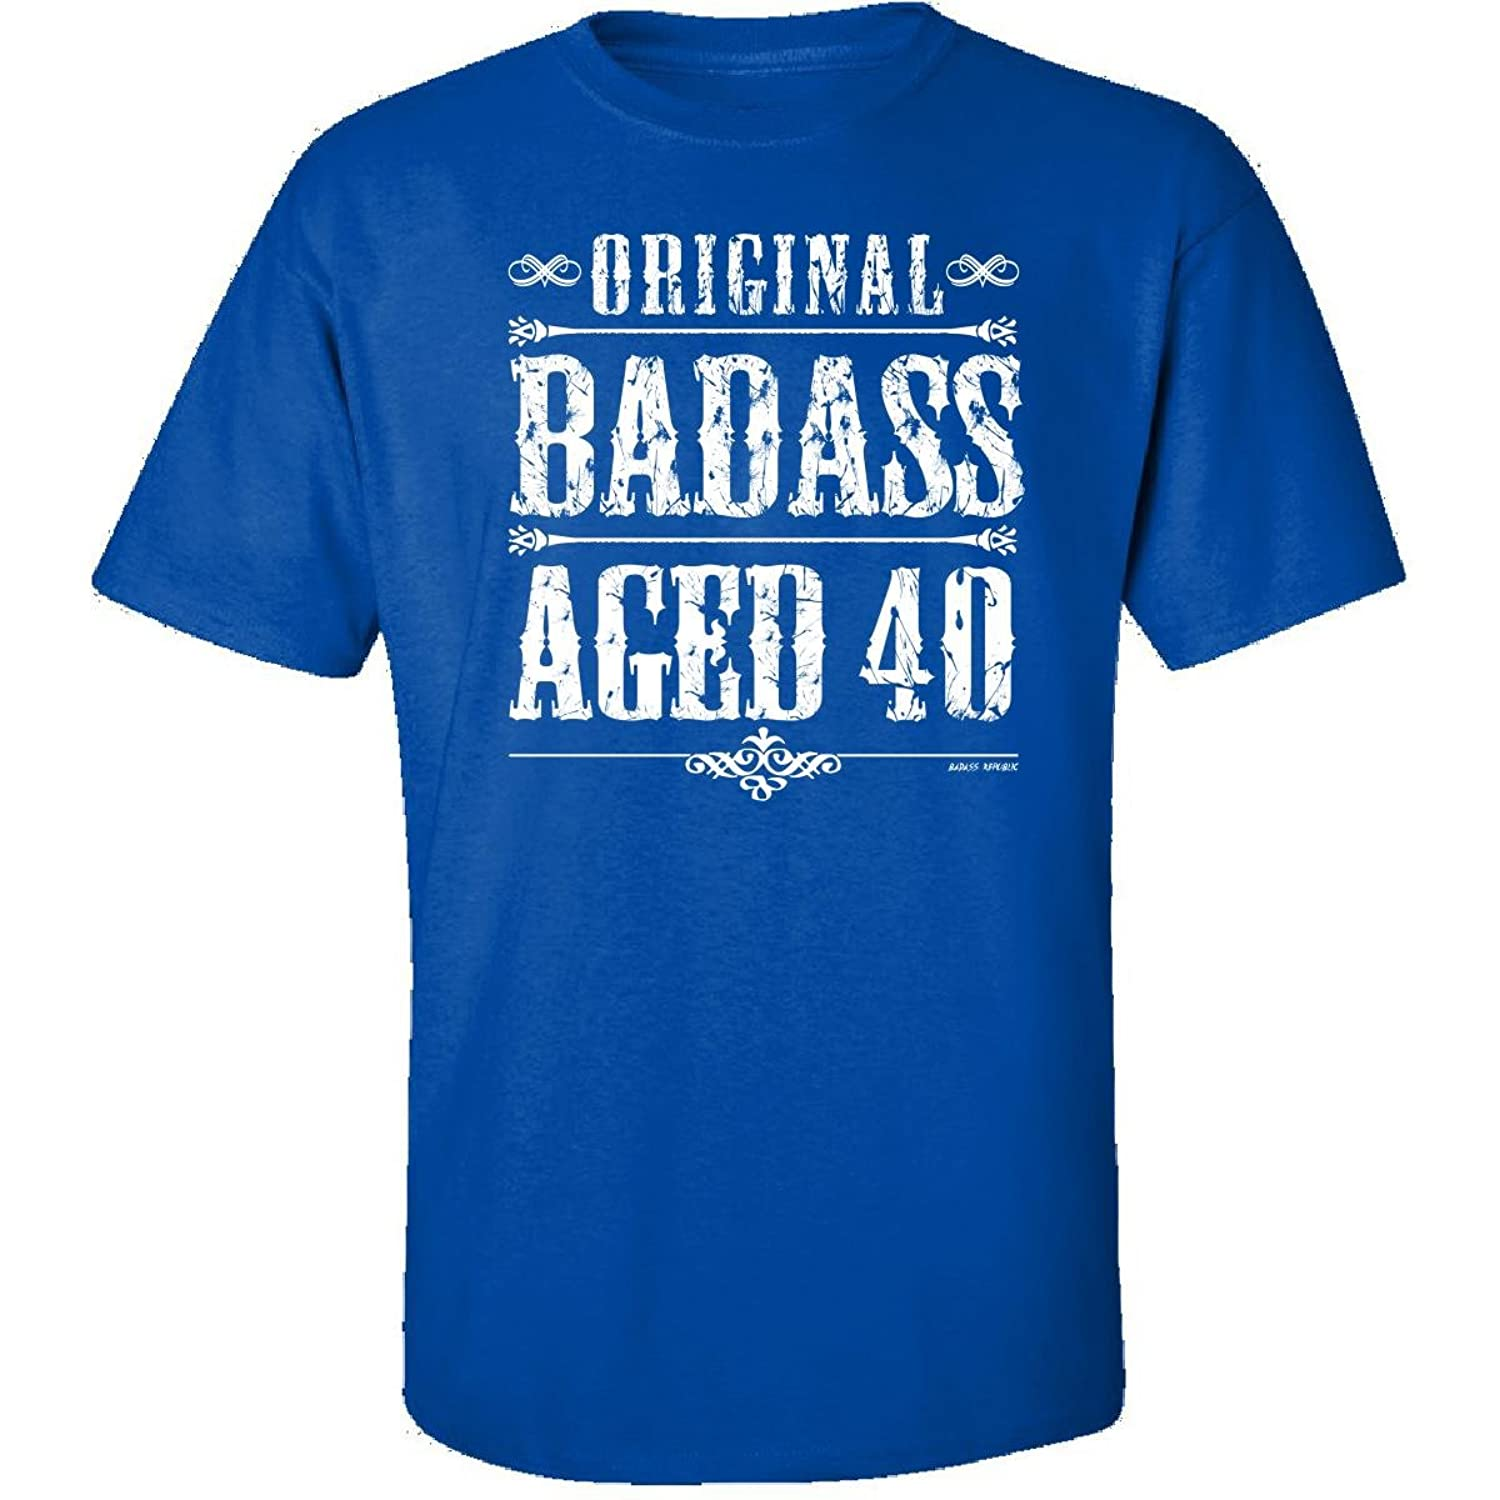 40th Birthday Gifts For Him Original Badass Aged 40 Years - Adult Shirt